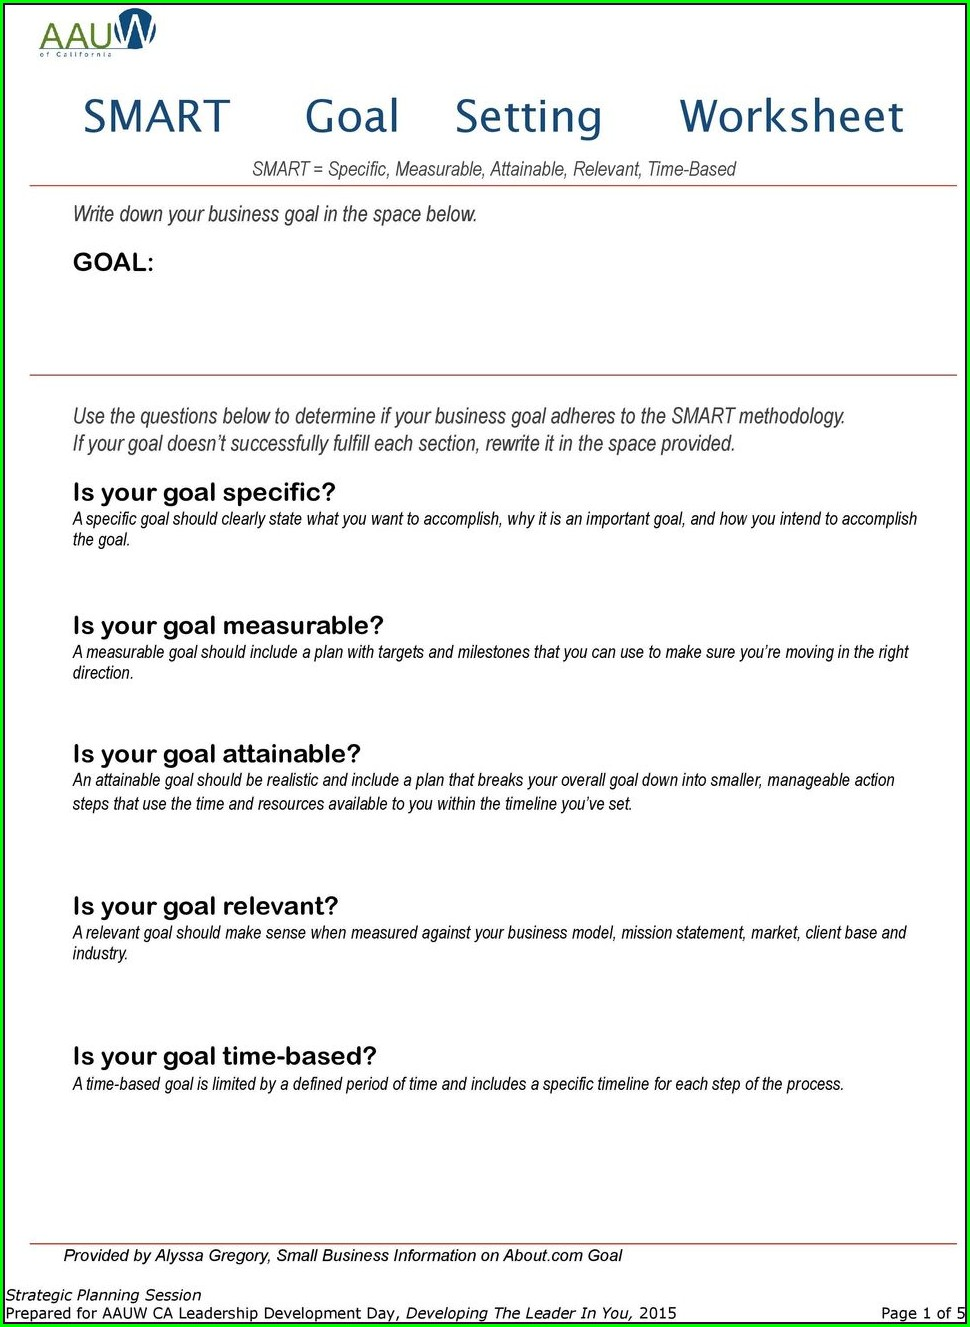 Smart Goal Setting Worksheet Pdf